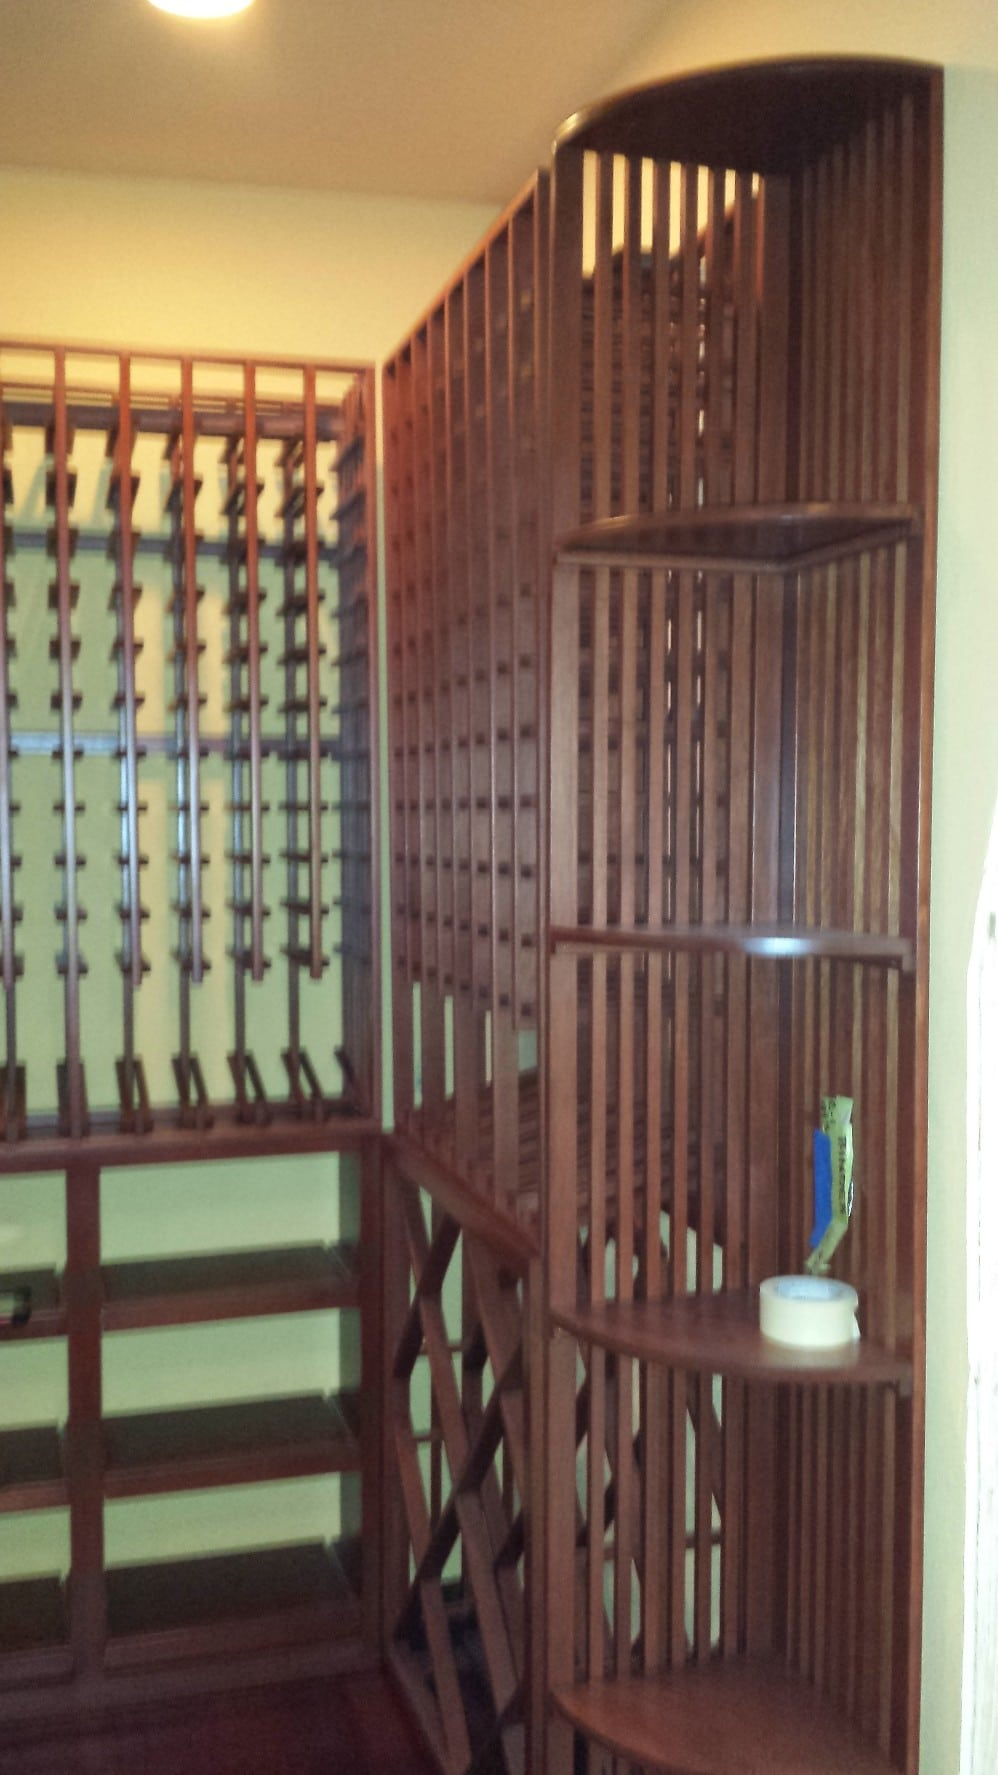 Quarter Round display racks Houston Home Wine Cellar